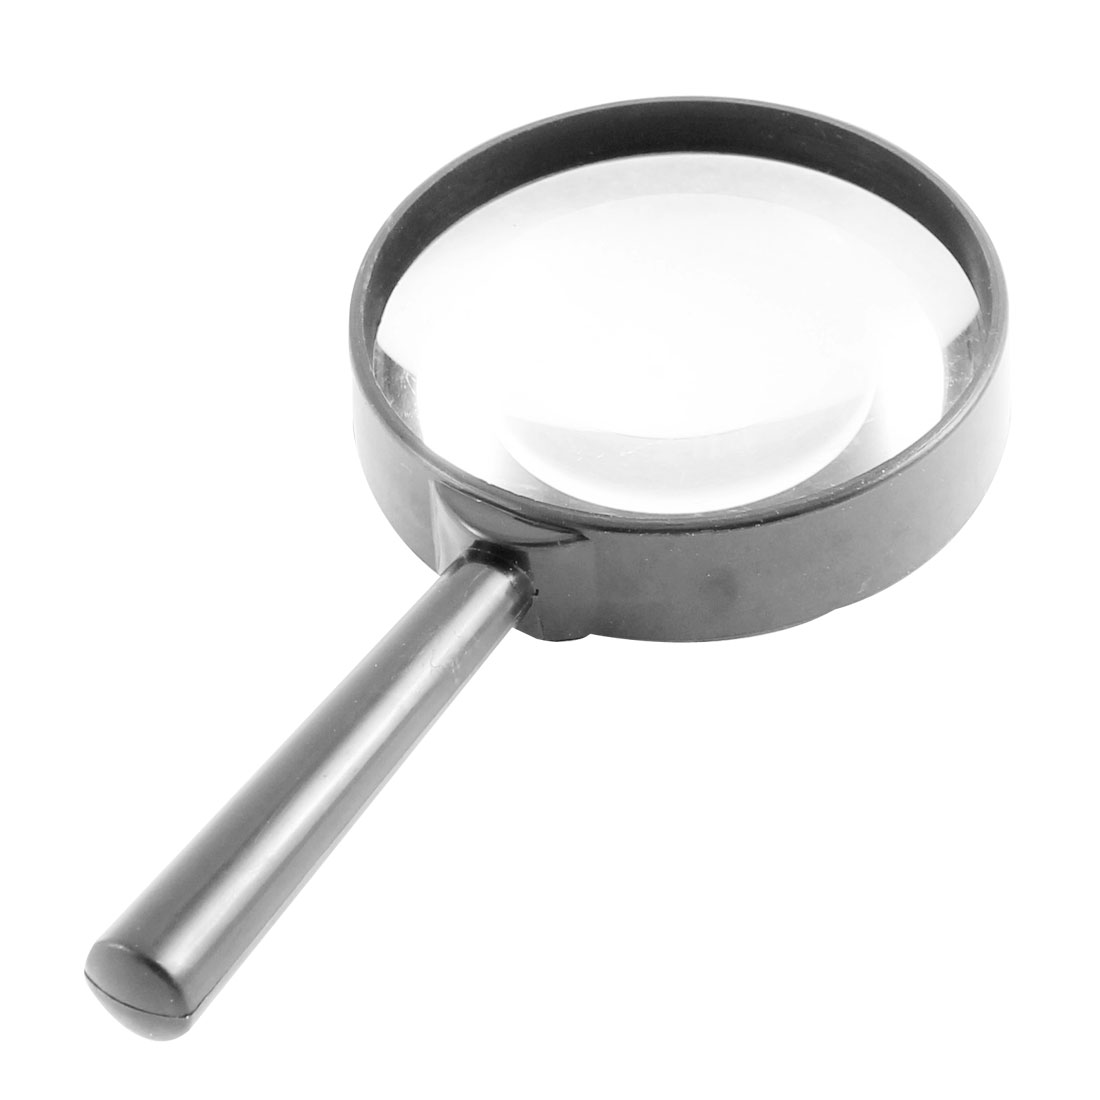 Unique Bargains 65mm Lens 8X Handheld Magnifier Reading Magnifying Glass Jewelry Loupe - Walmart.com | Tuggl